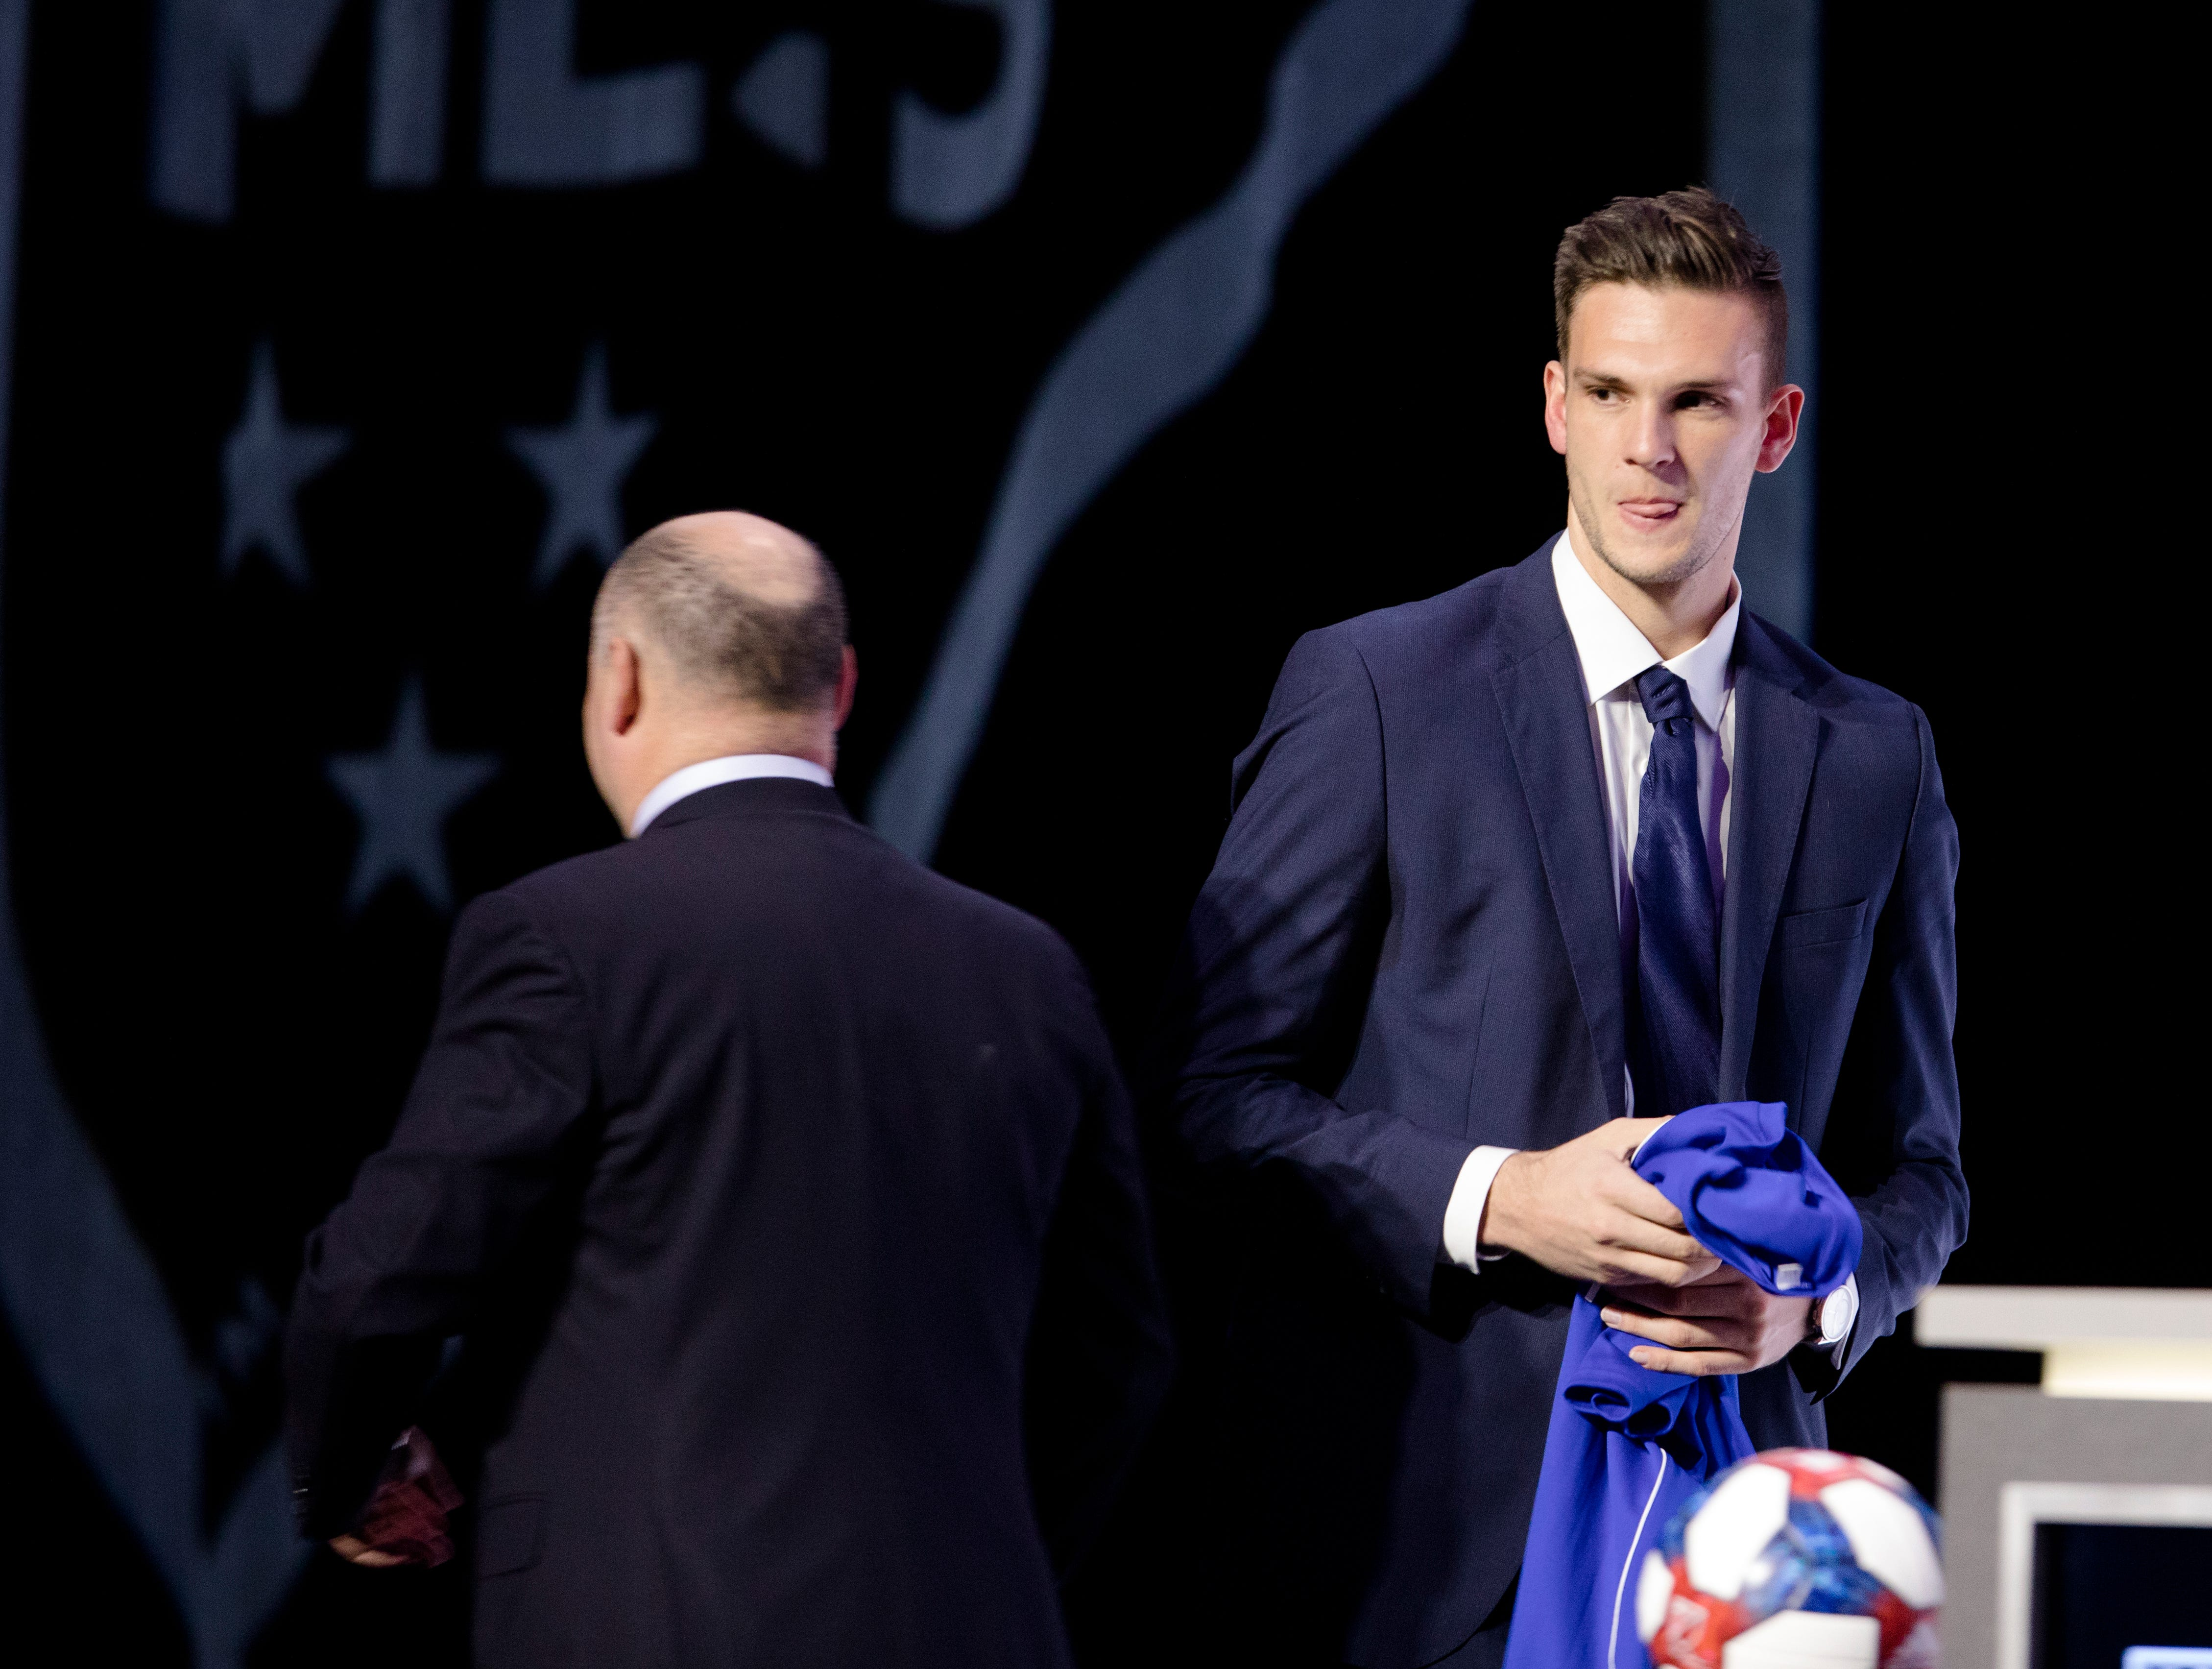 Ben Lundt speaks after being drafted by FC Cincinnati as the second round of the MLS Superdraft on Friday, Jan. 11, 2019 in Chicago, Illinois.